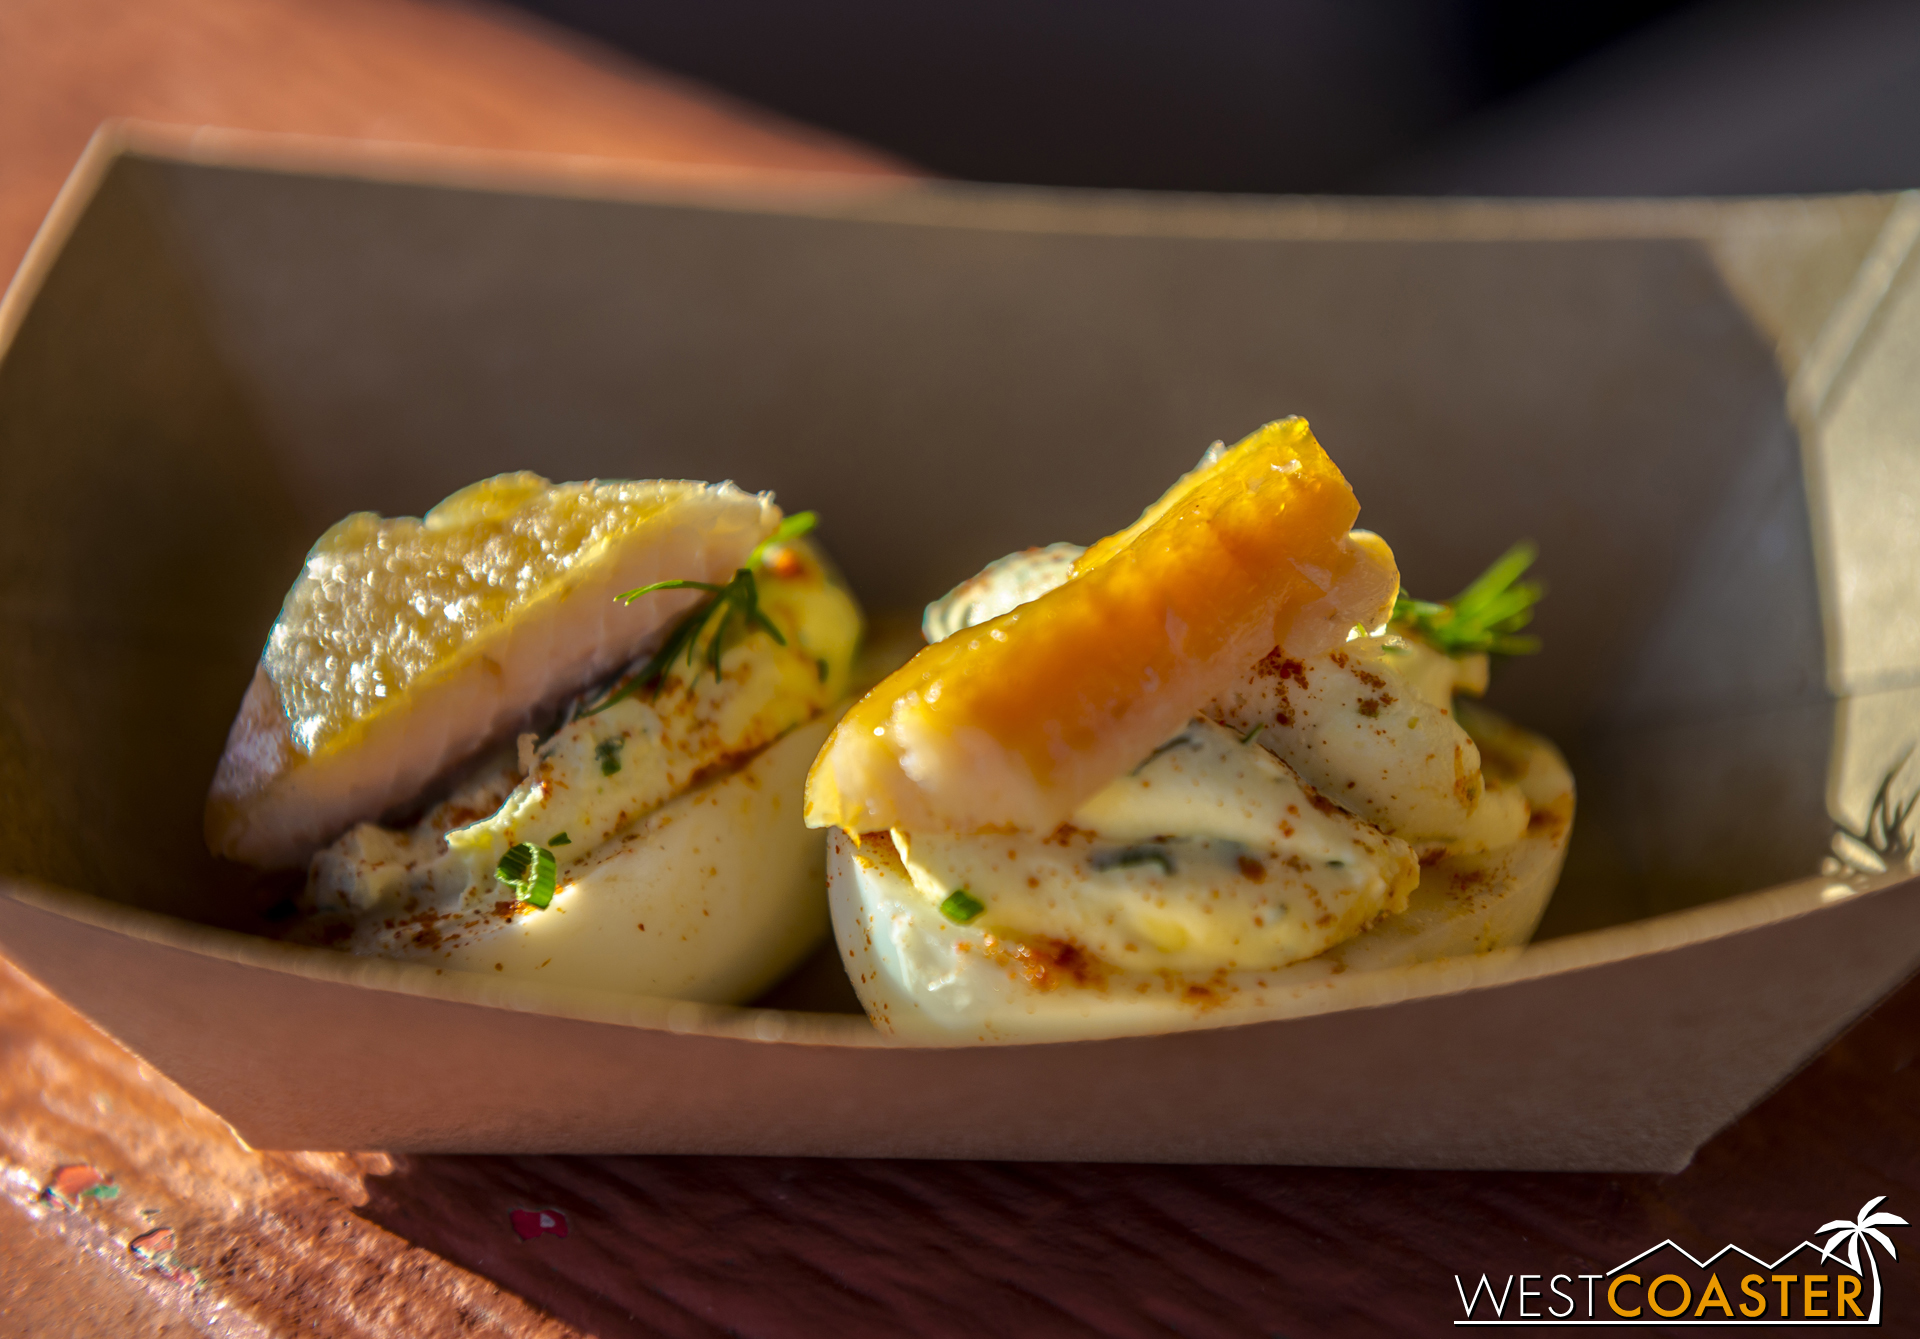 From Seafood...Sustained:  Cage-free Deviled Eggs with Farm-raised Smoked Trout  with Cream Cheese and Chives ($4.00)